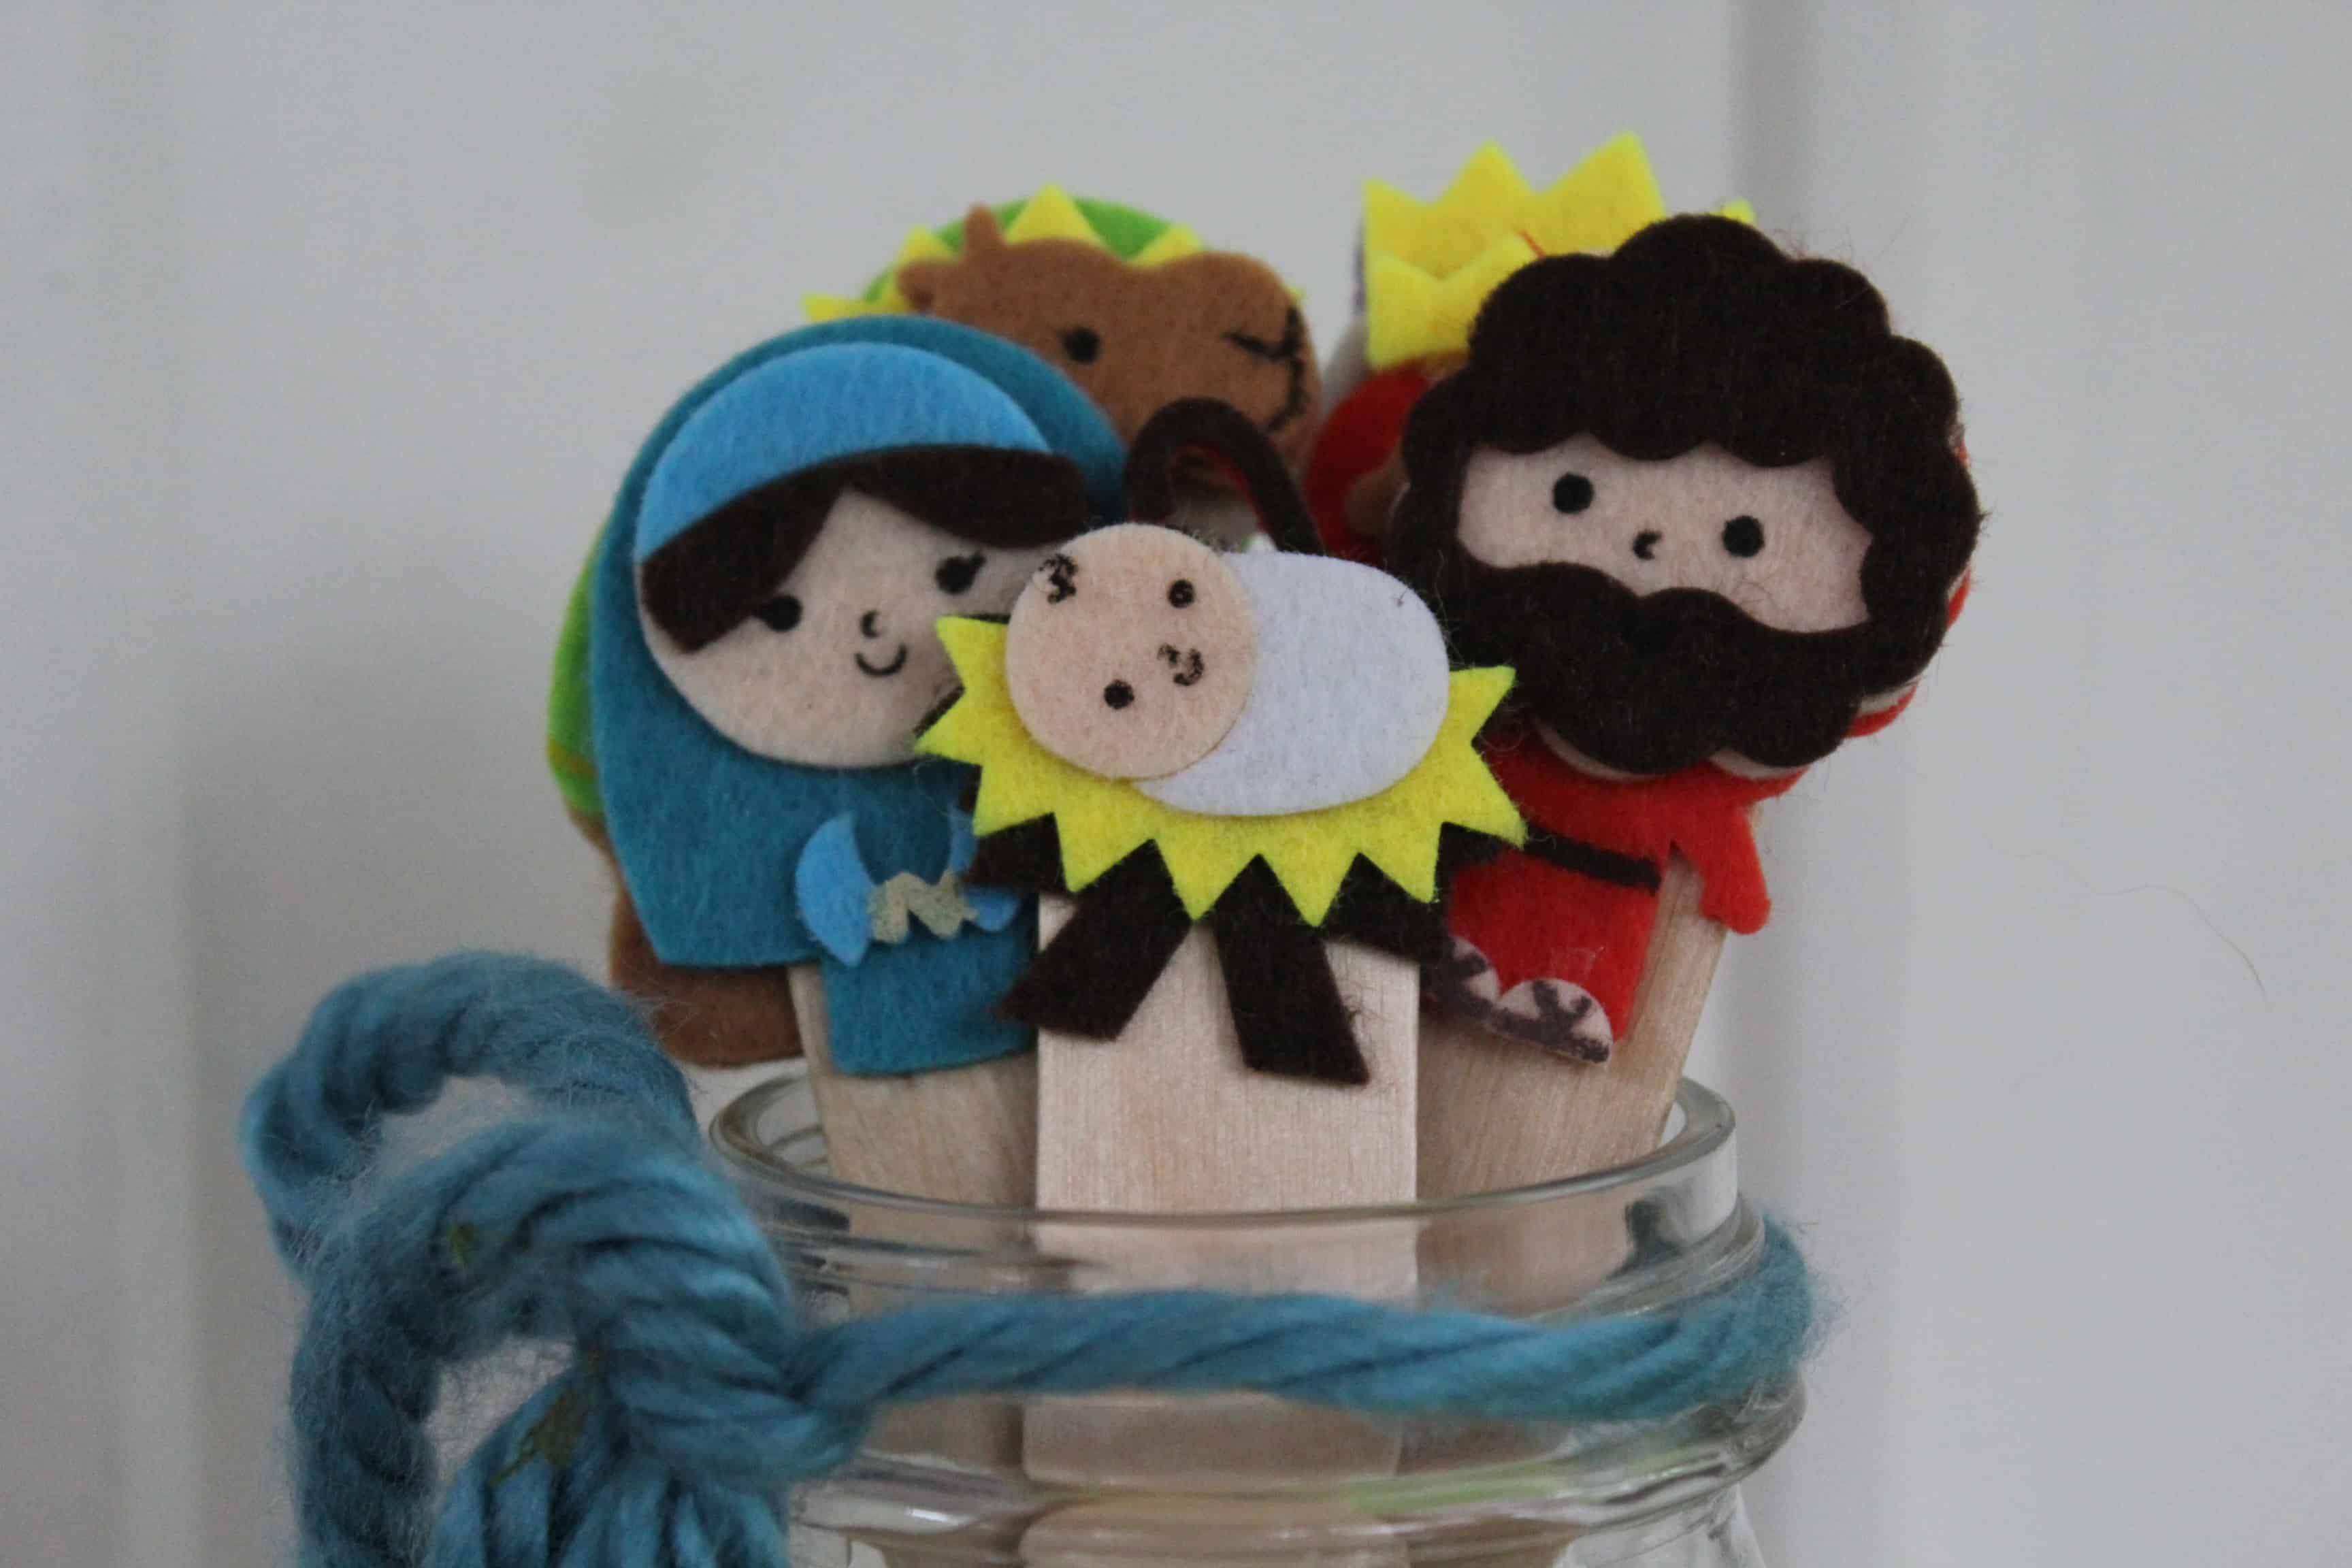 Some crafts related to the nativity can help us to have more Christ-centered Christmas. Today, I would like to share nativity stick puppets.